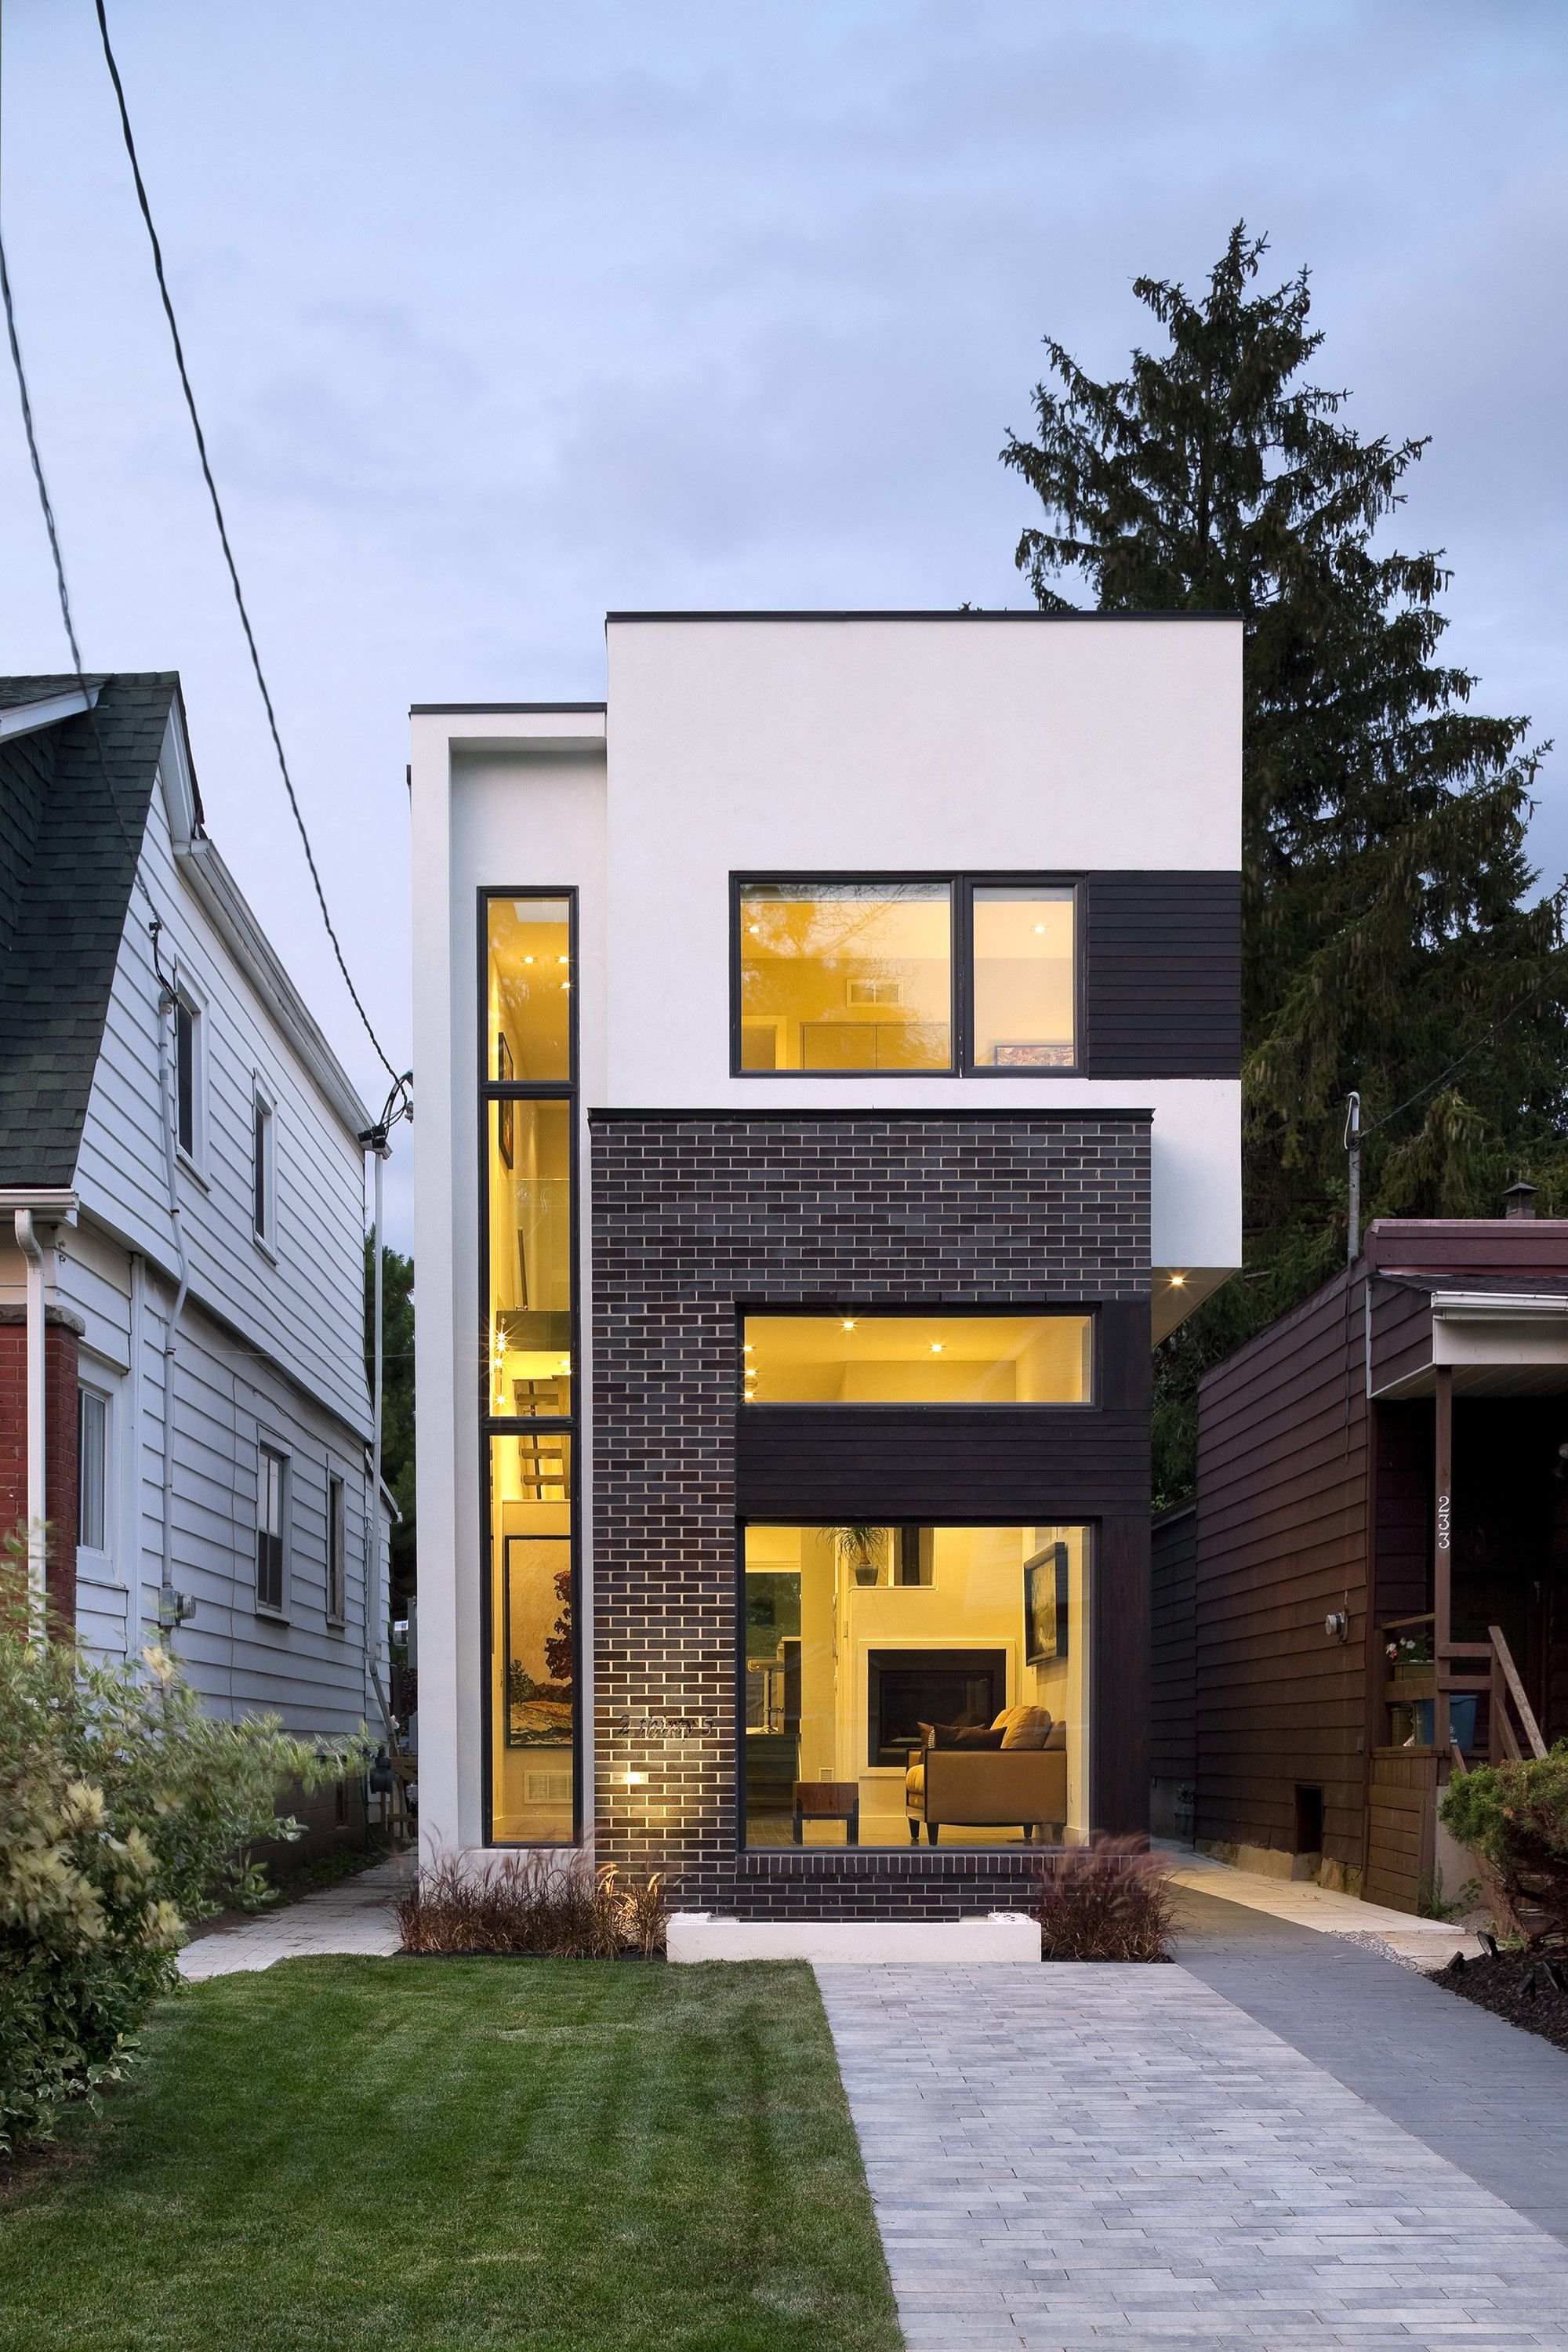 the linear house green dot architects architects toronto tom arban architects green dot architects location toronto on canada design team saied mahboubi titka safarzadeh area sqm year